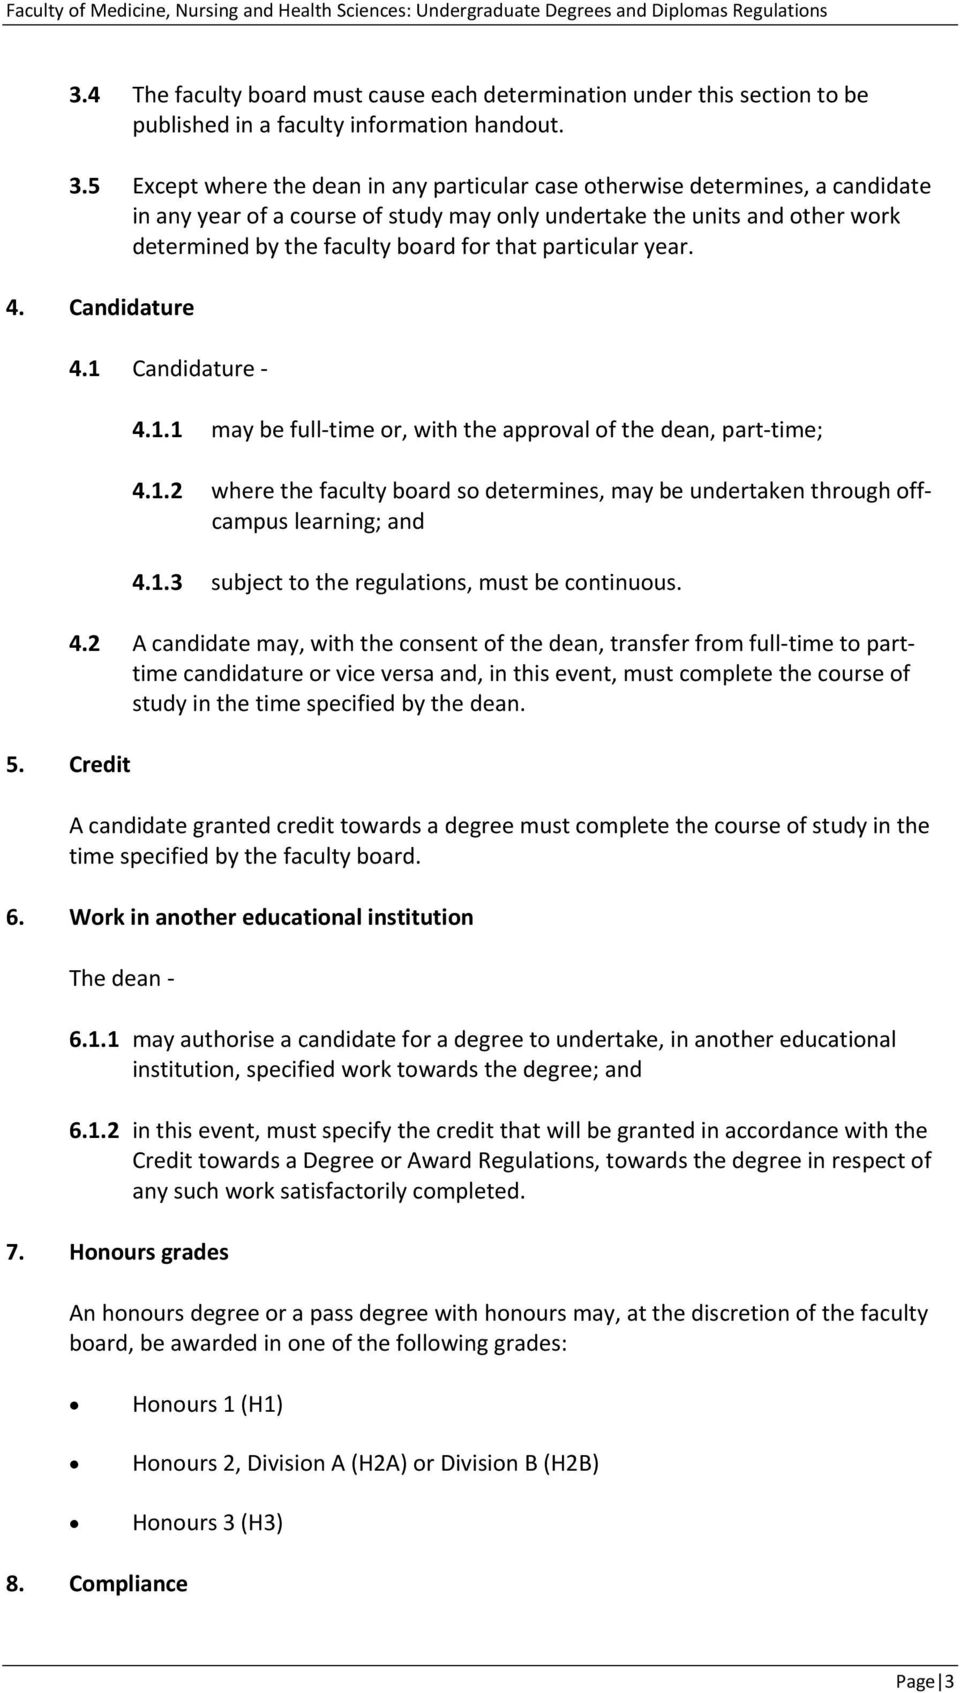 particular year. 4. Candidature 5. Credit 4.1 Candidature 4.1.1 may be full time or, with the approval of the dean, part time; 4.1.2 where the faculty board so determines, may be undertaken through offcampus learning; and 4.